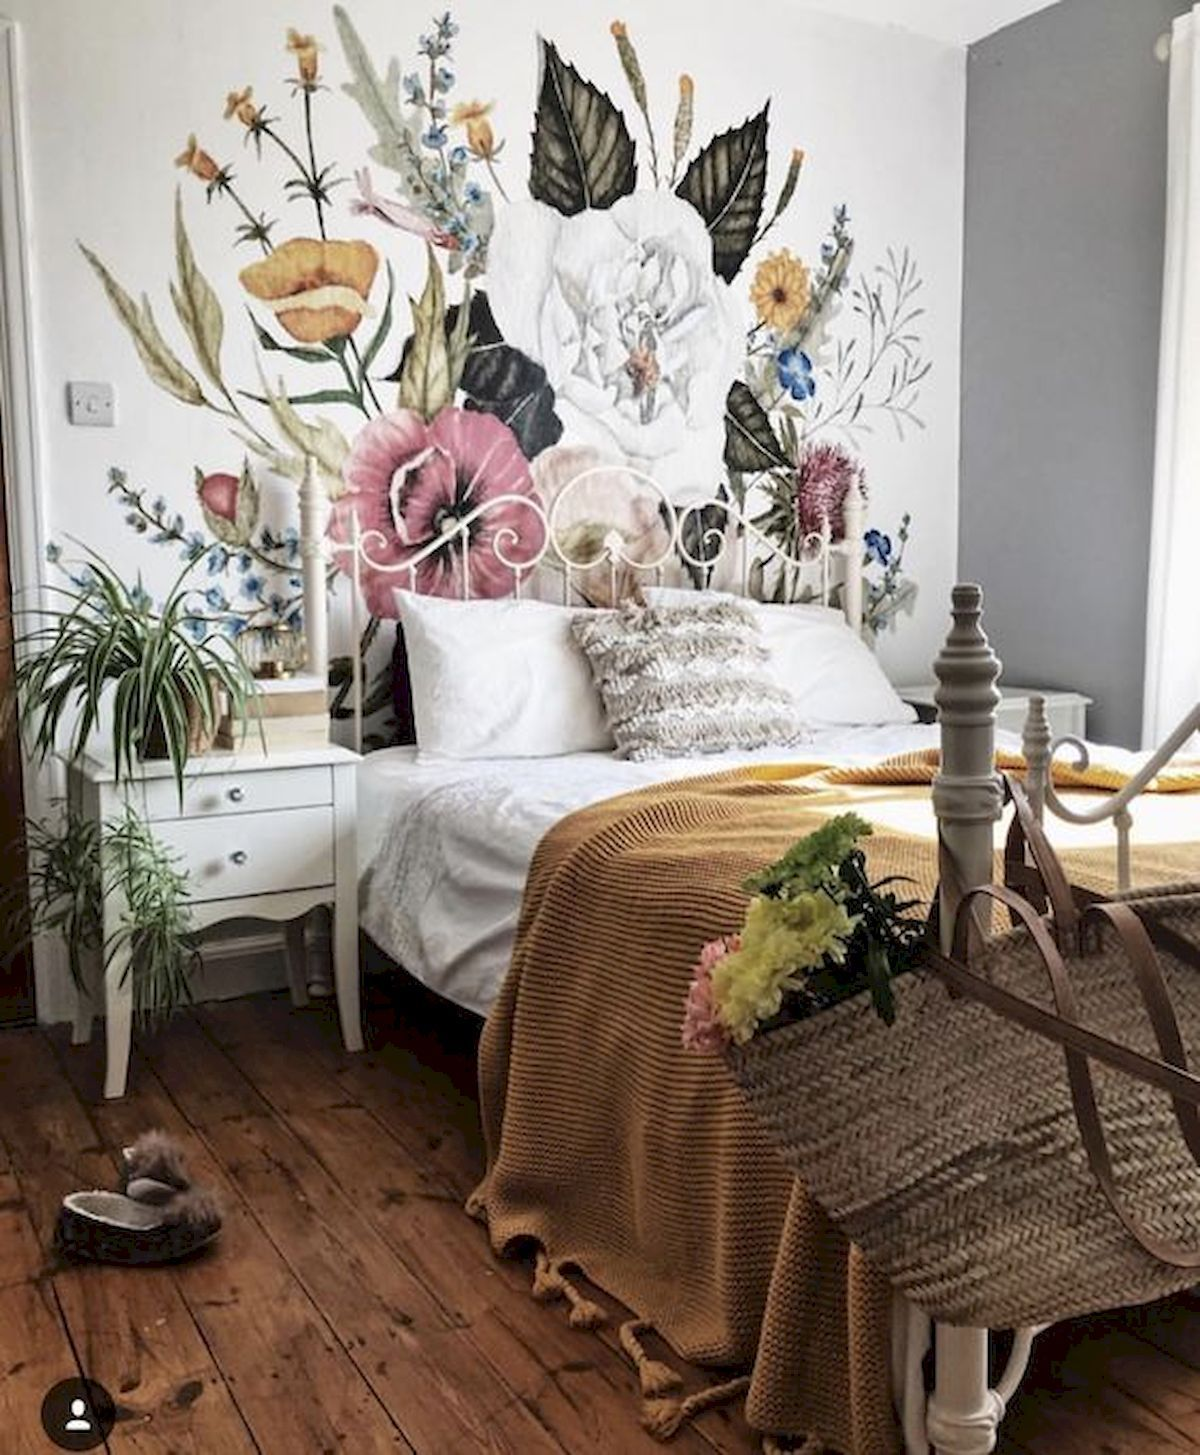 55 Best Home Decor Ideas: 55 Creative Apartment Decor Ideas And Remodel